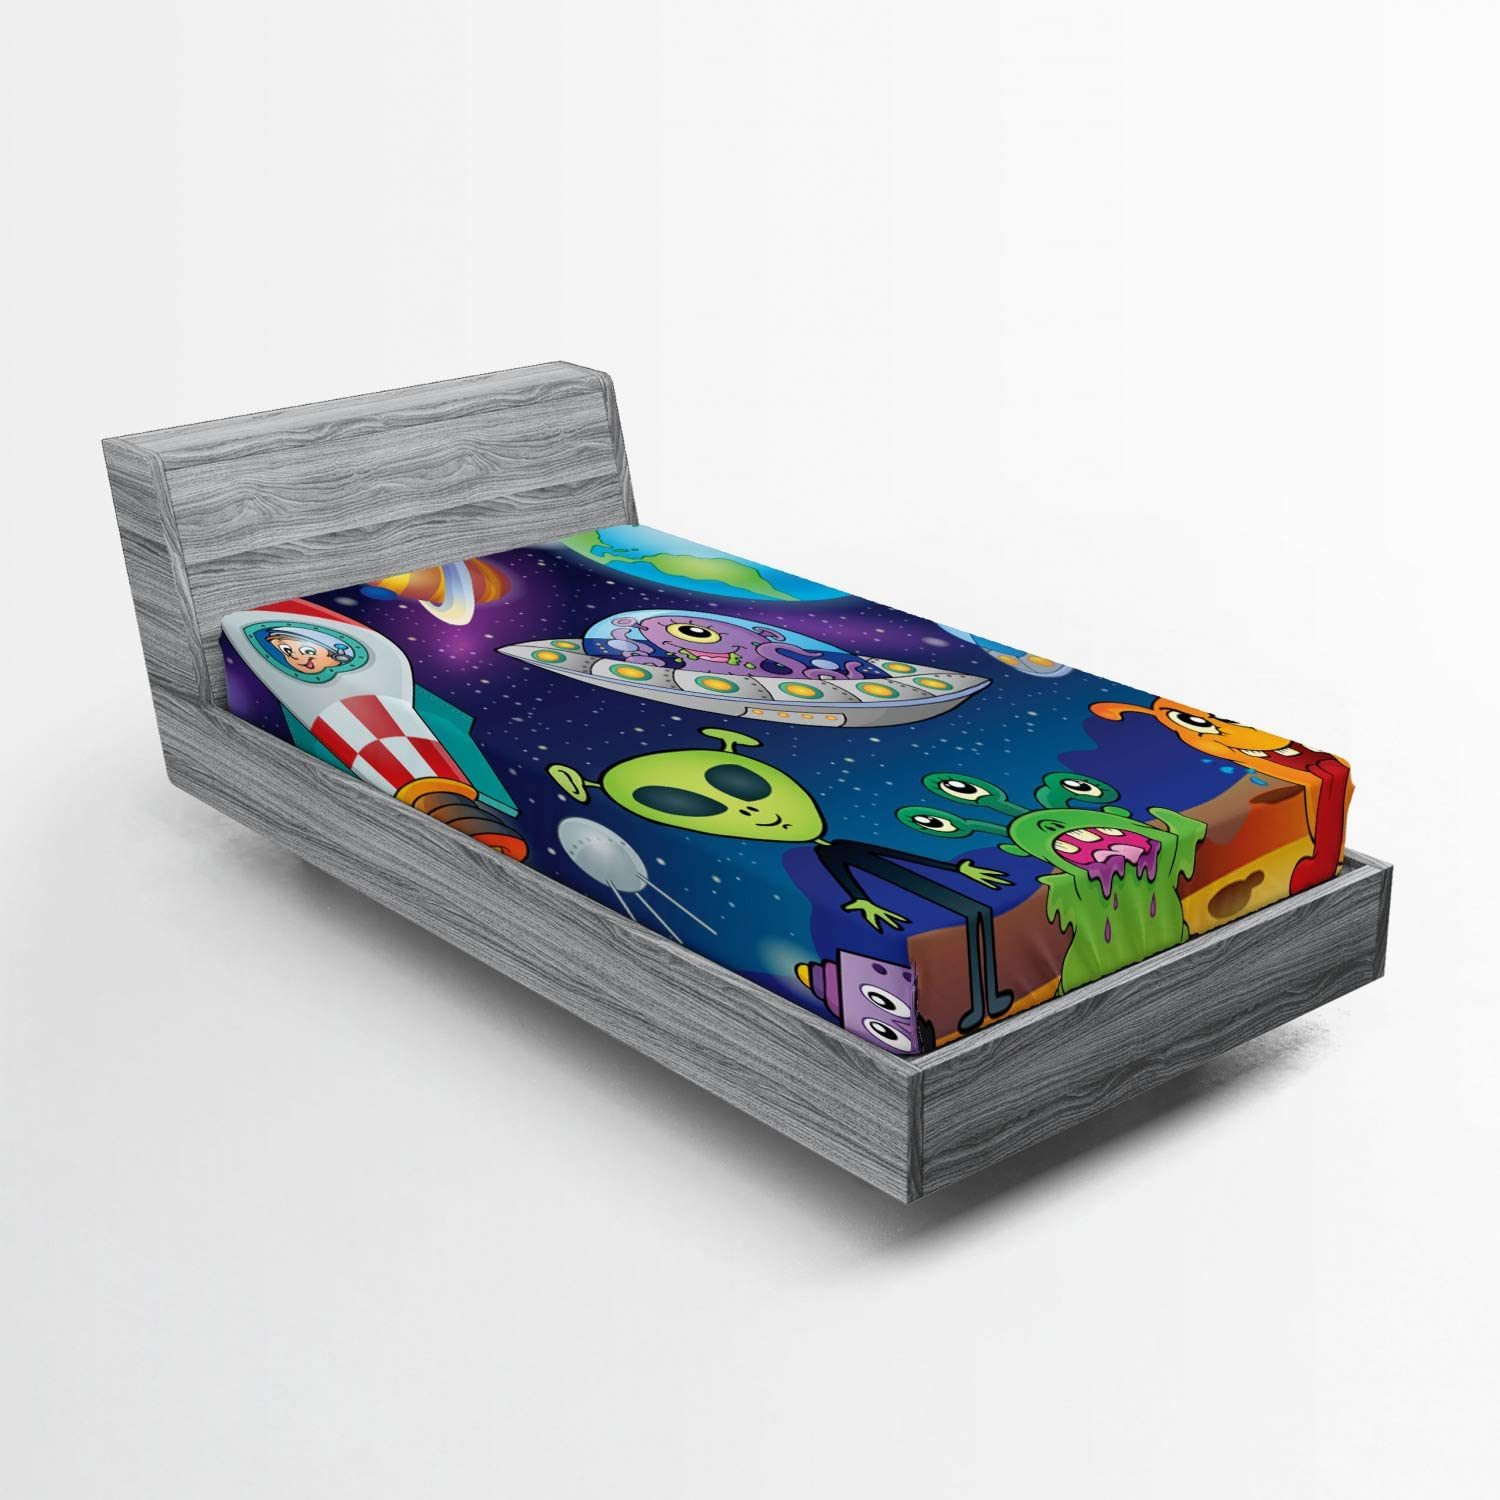 Lunarable Outer Space Sale SALE% OFF Fitted Sheet Planet on Interstell Fantasy Dealing full price reduction